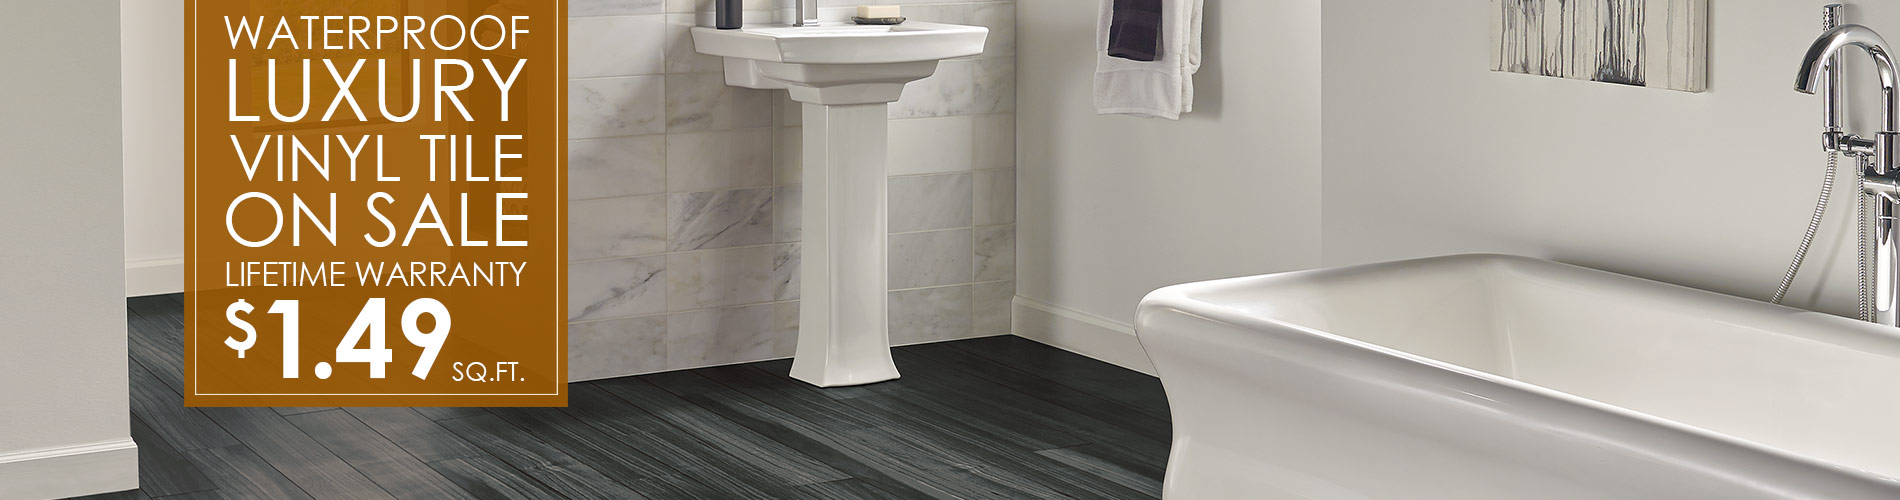 Waterproof Luxury Vinyl Tile on sale!  Lifetime warranty only $1.49 sq.ft.